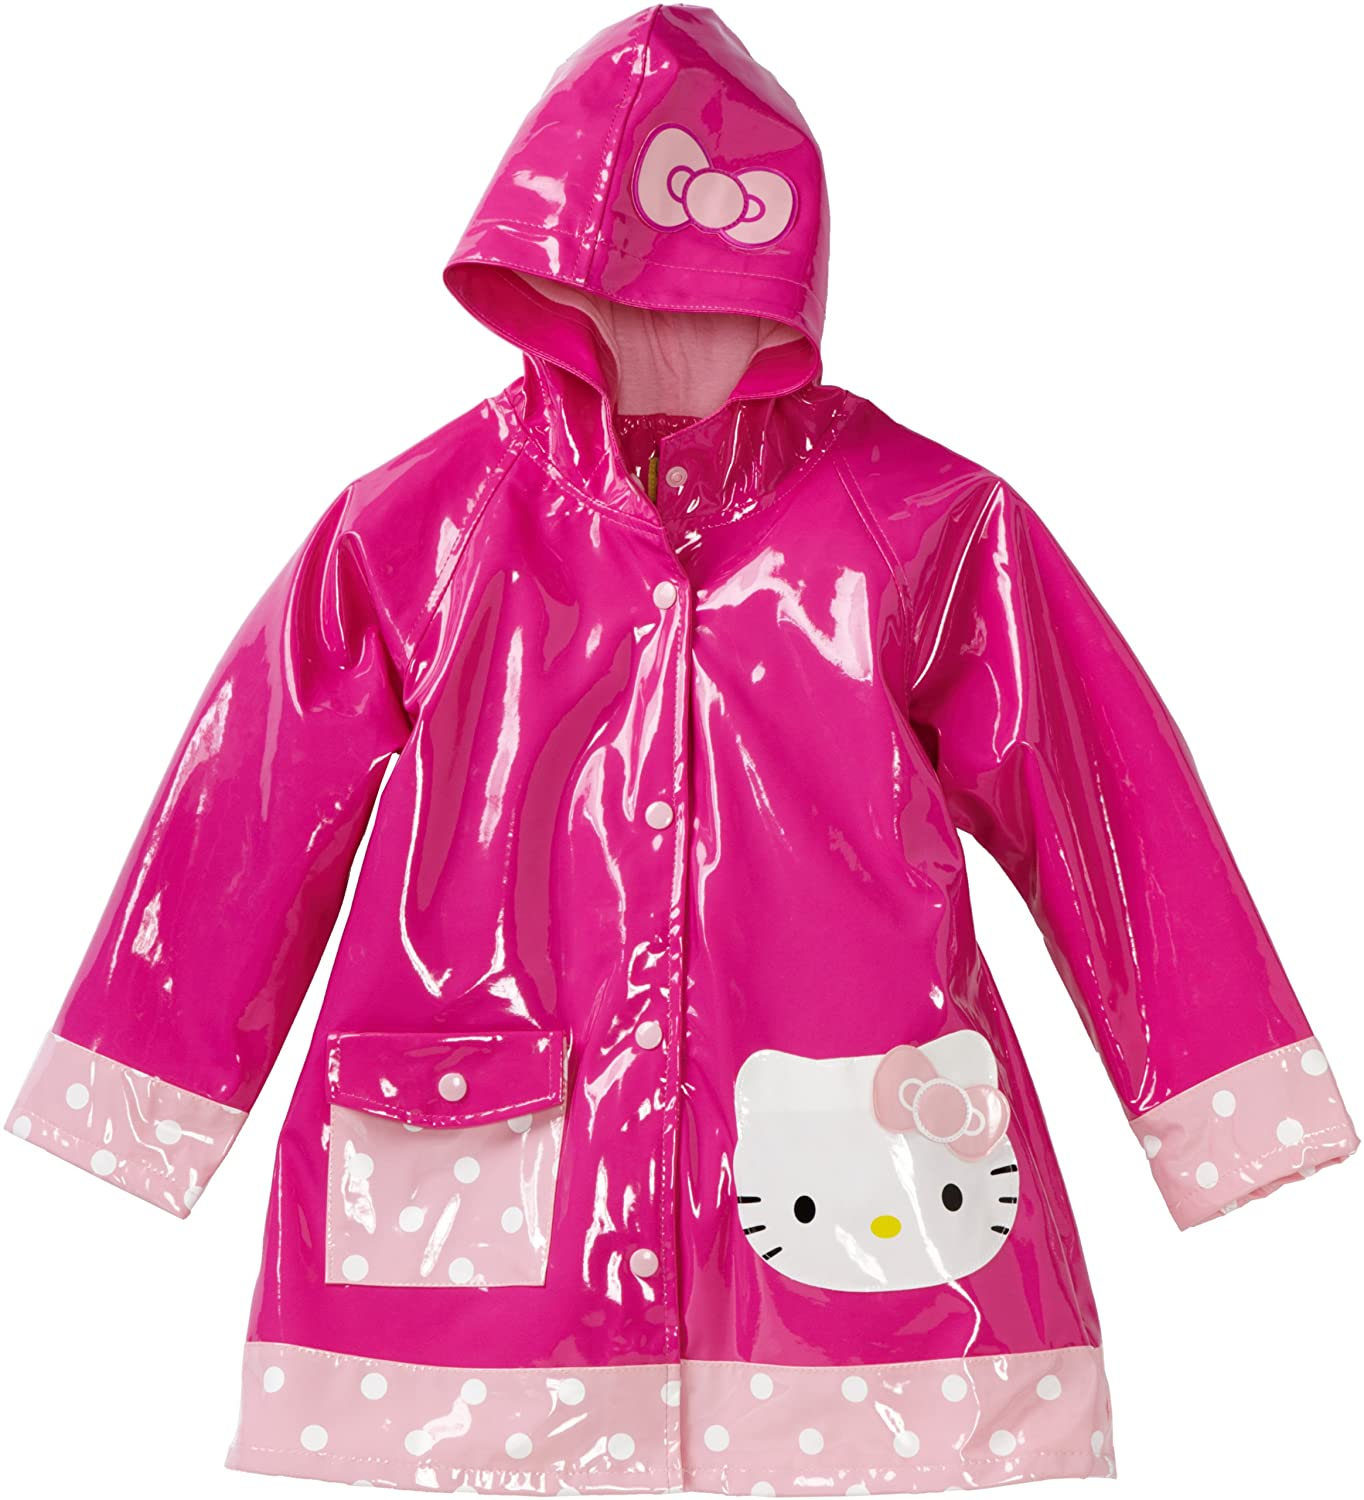 Shop for girls raincoats online at Target. Free shipping on purchases over $35 and save 5% every day with your Target REDcard.